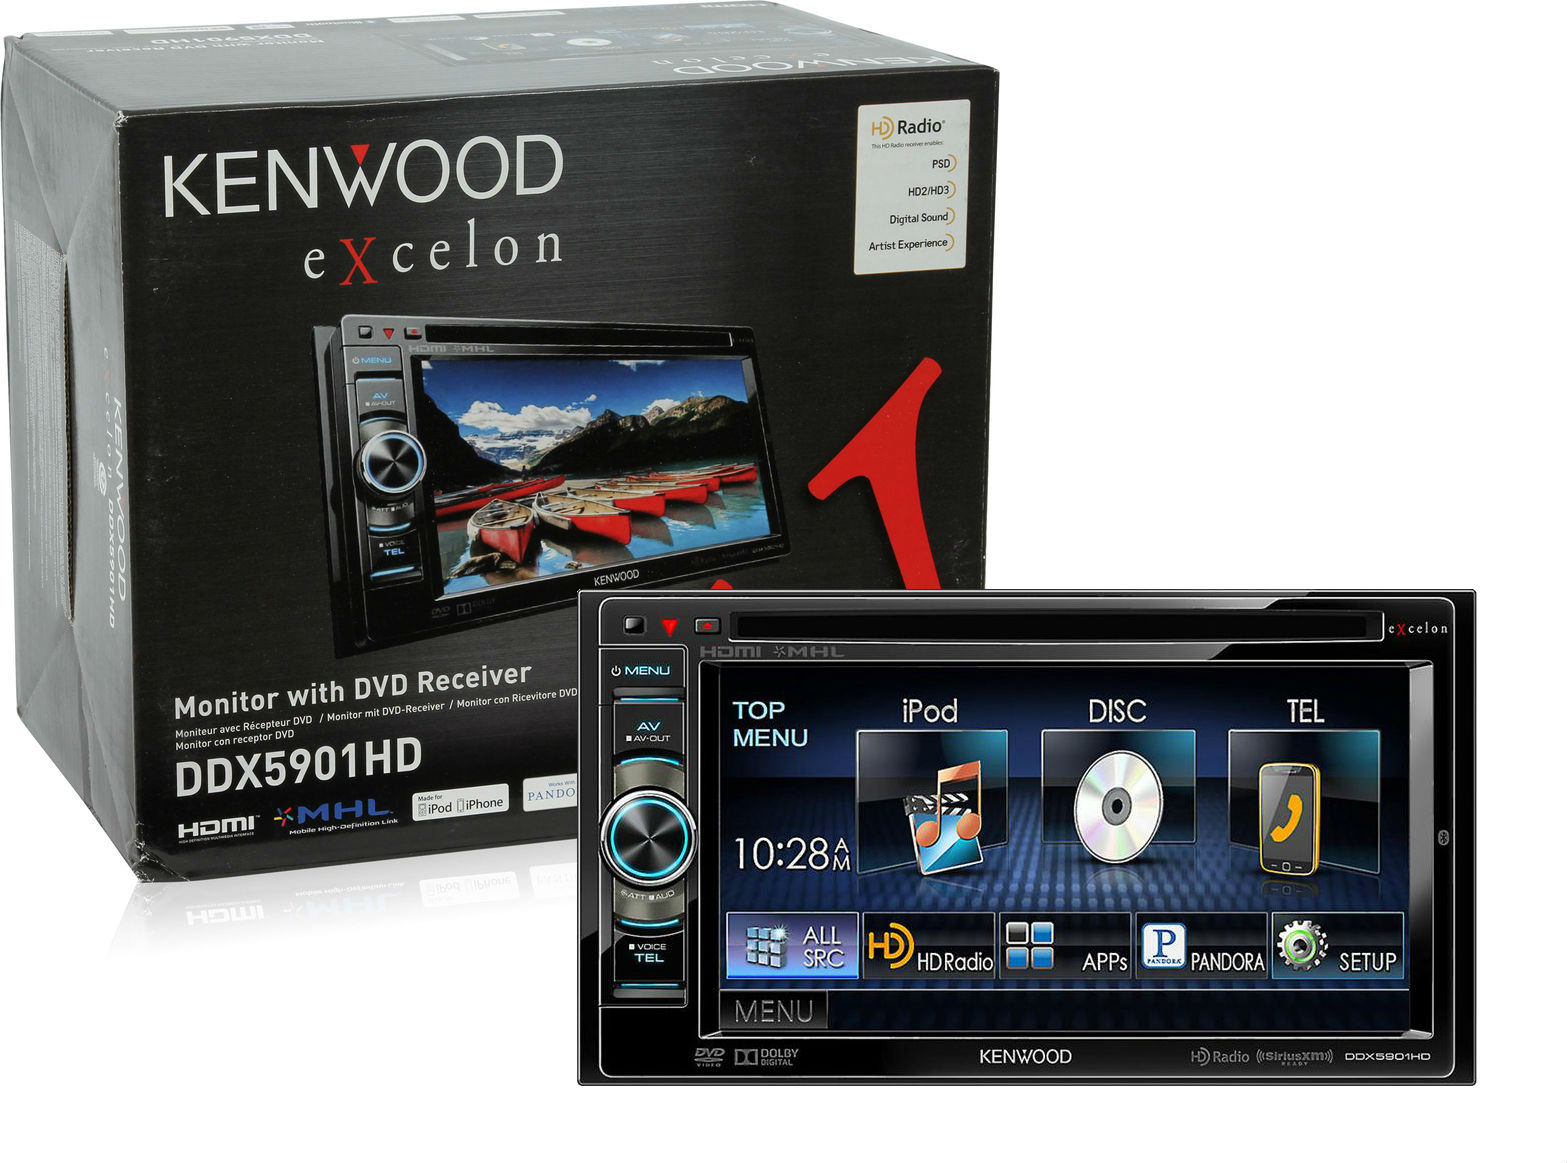 kenwood excelon ddx5901hd double din receiver w built in. Black Bedroom Furniture Sets. Home Design Ideas